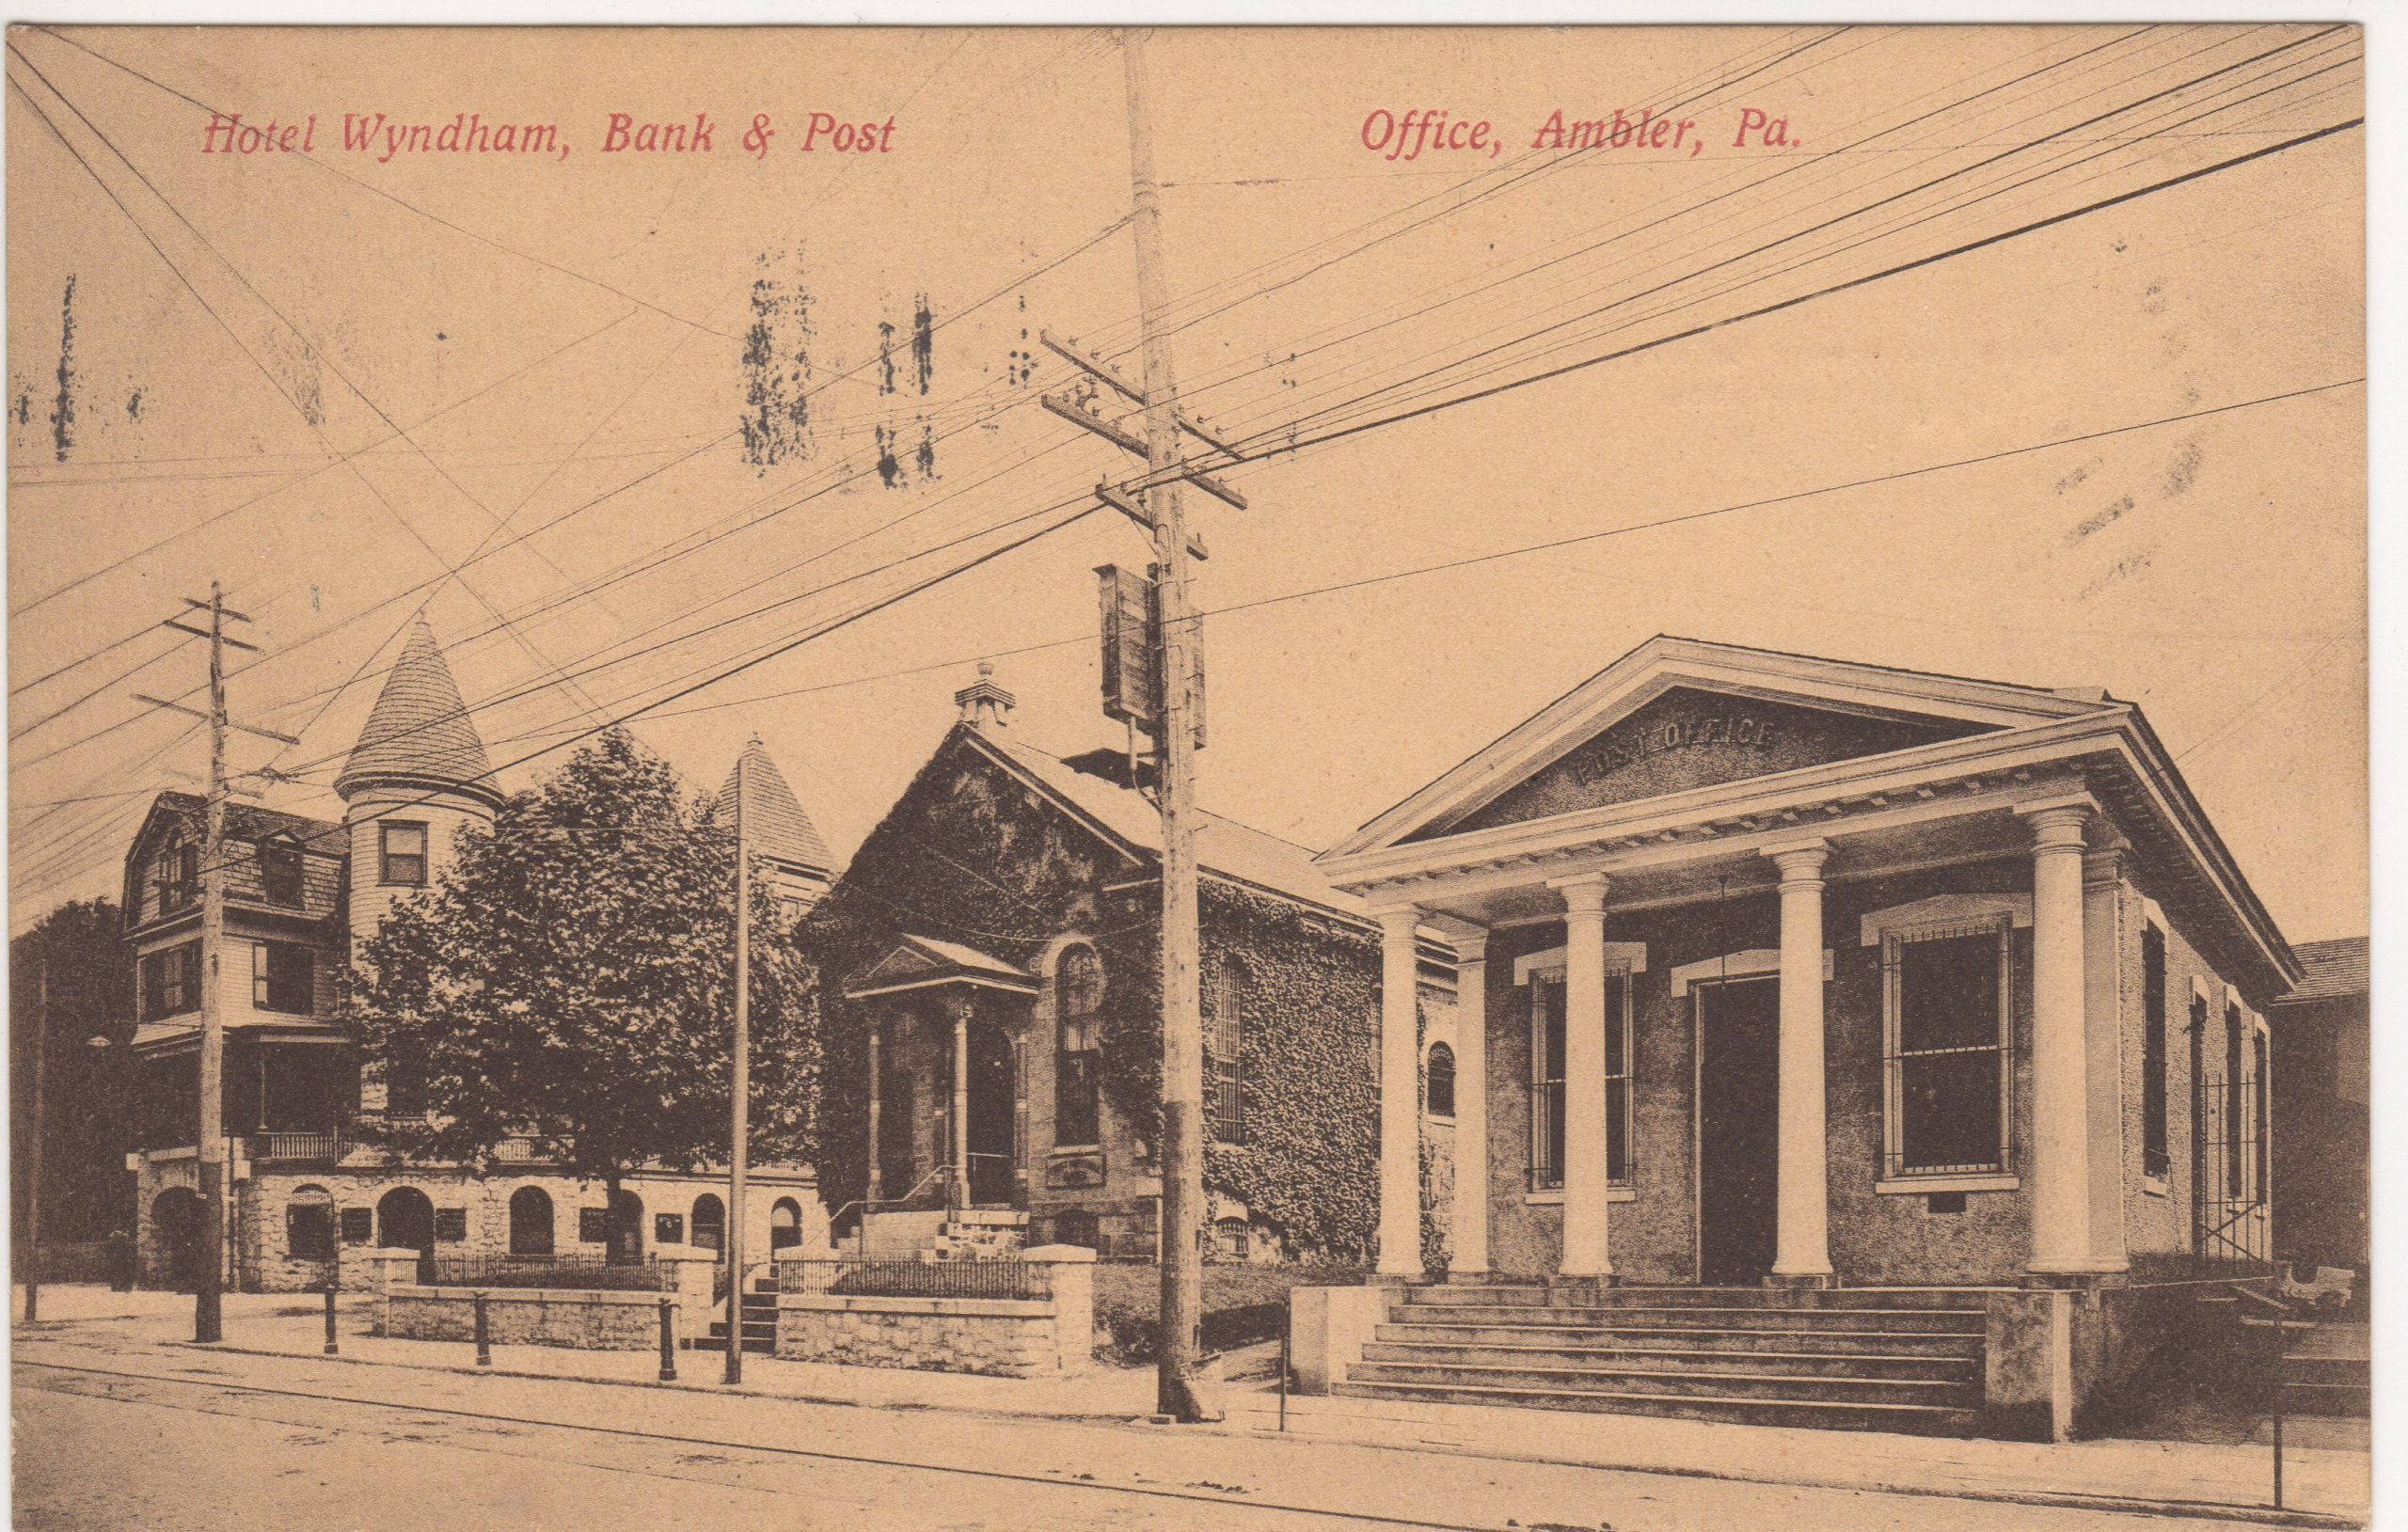 4125.57 Ambler Pa Postcard_Hotel Wyndham_Bank_Post Office_circa 1909